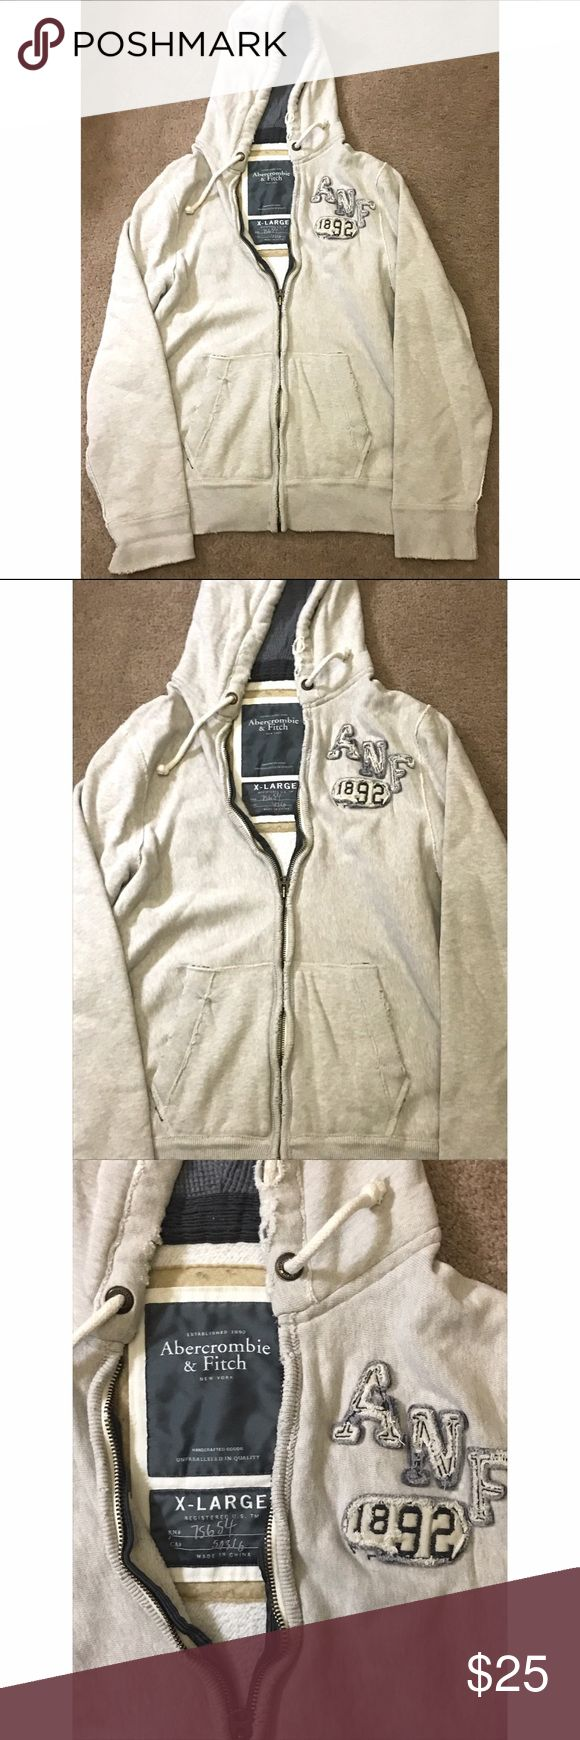 Abercrombie & Fitch hoodie Zip up Abercrombie & Fitch hoodie. Great condition, no flaws. Cream/ off white color. Abercrombie & Fitch Sweaters Zip Up